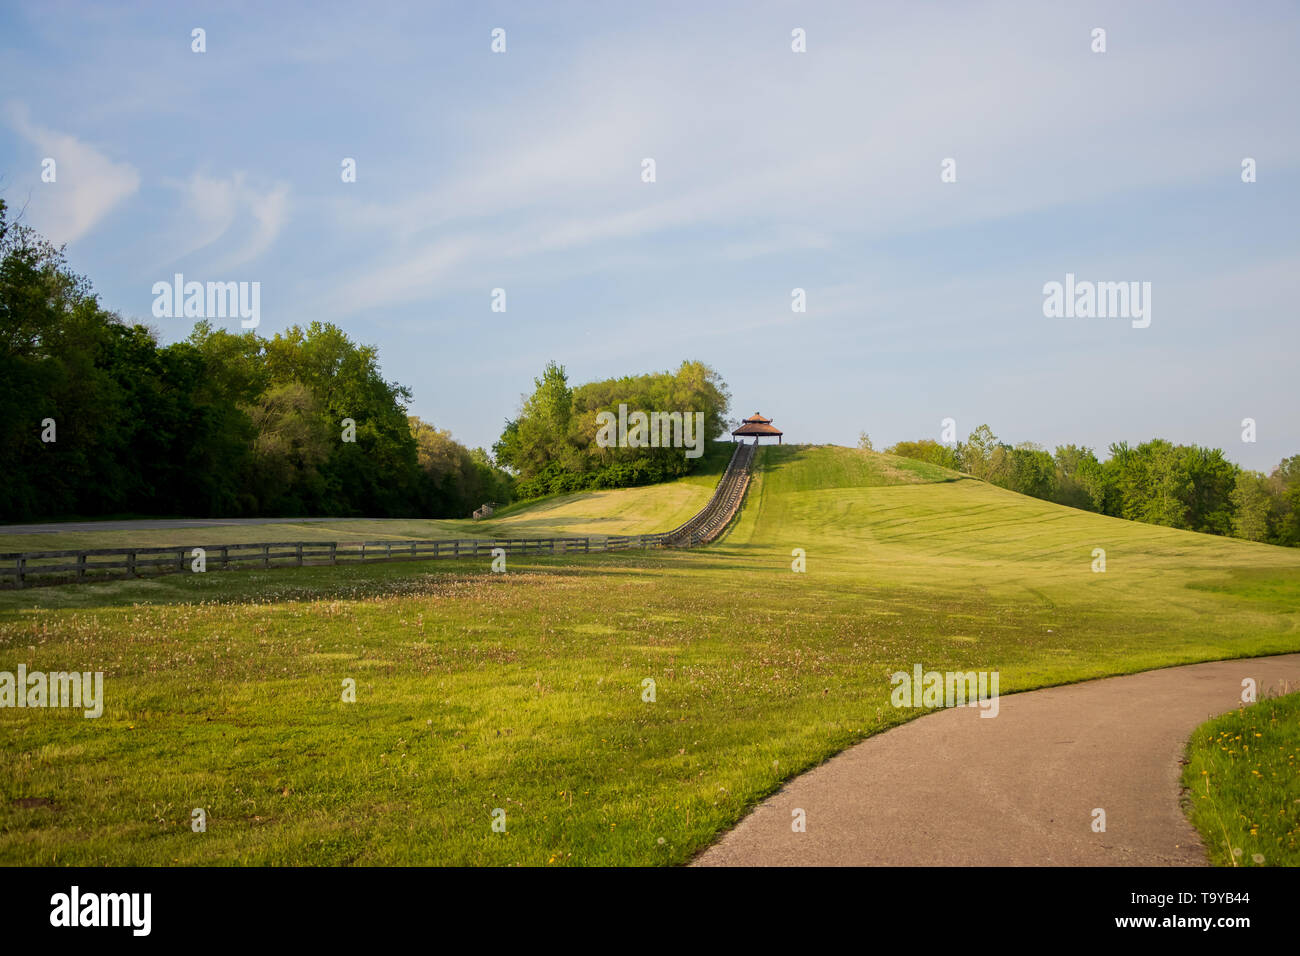 Once a Landfill, Now a Scenic Hilltop at Hines Park Michigan - Stock Image